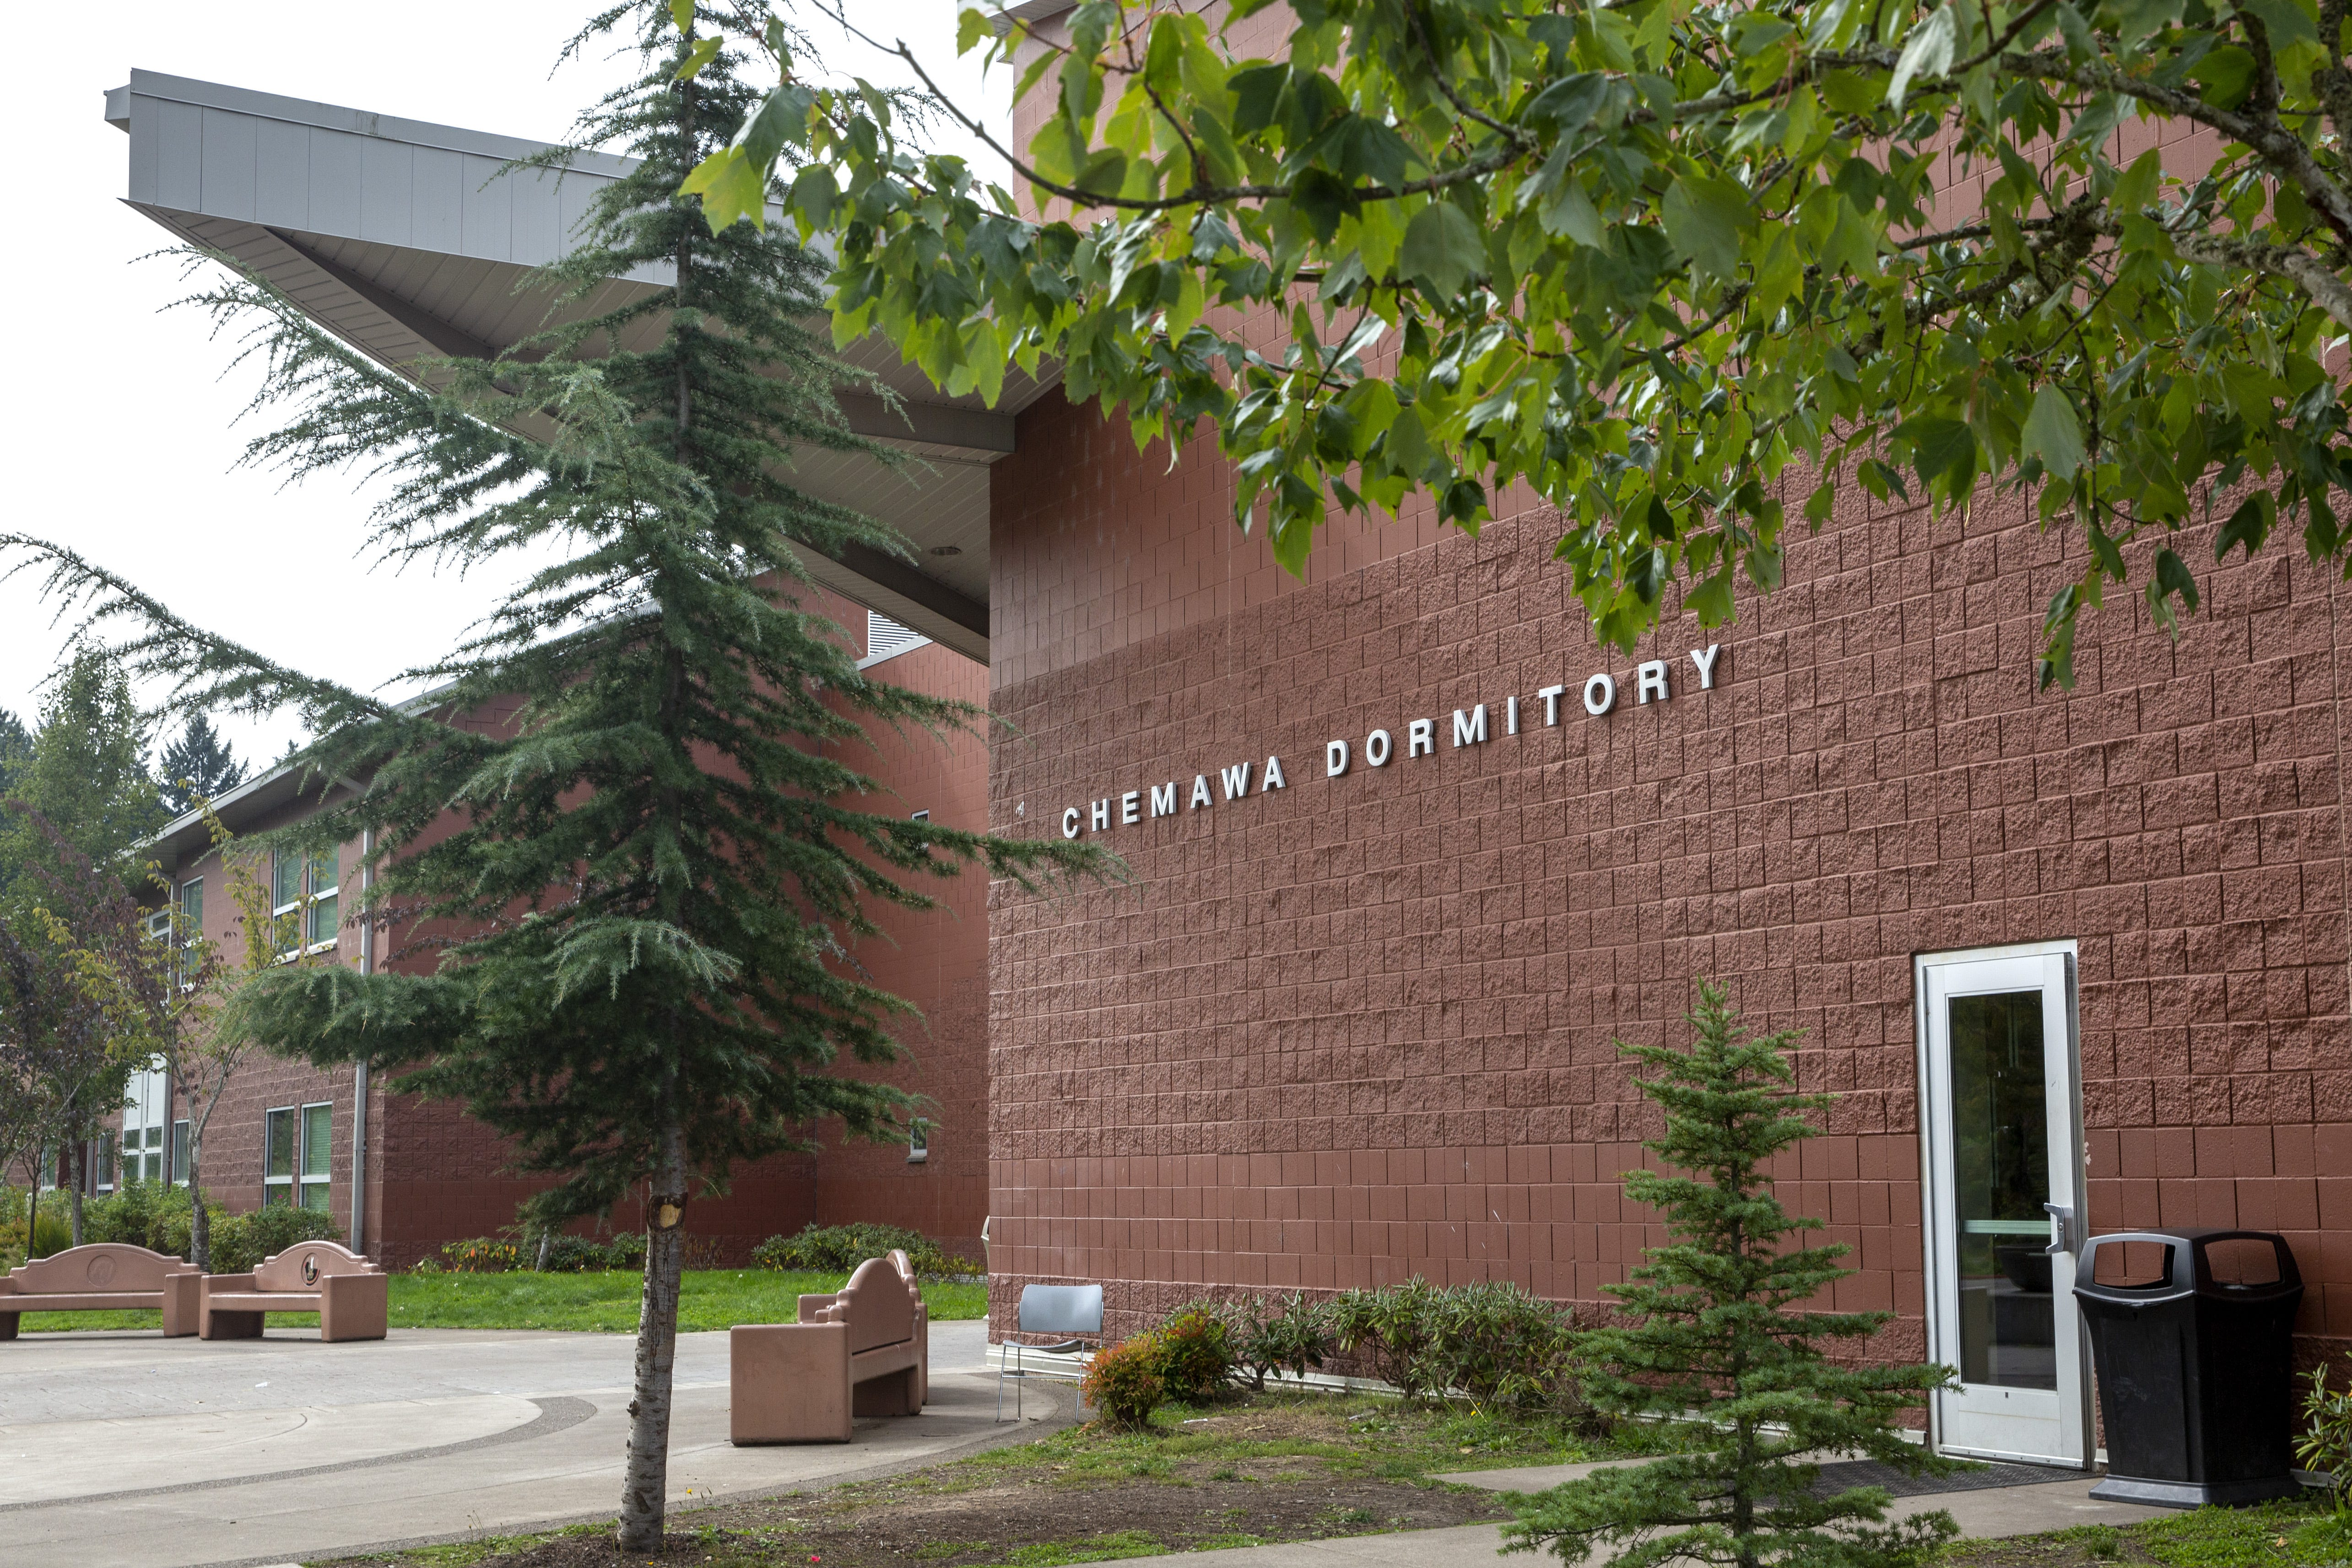 Oregon senators call for Chemawa Indian School financial records, other information